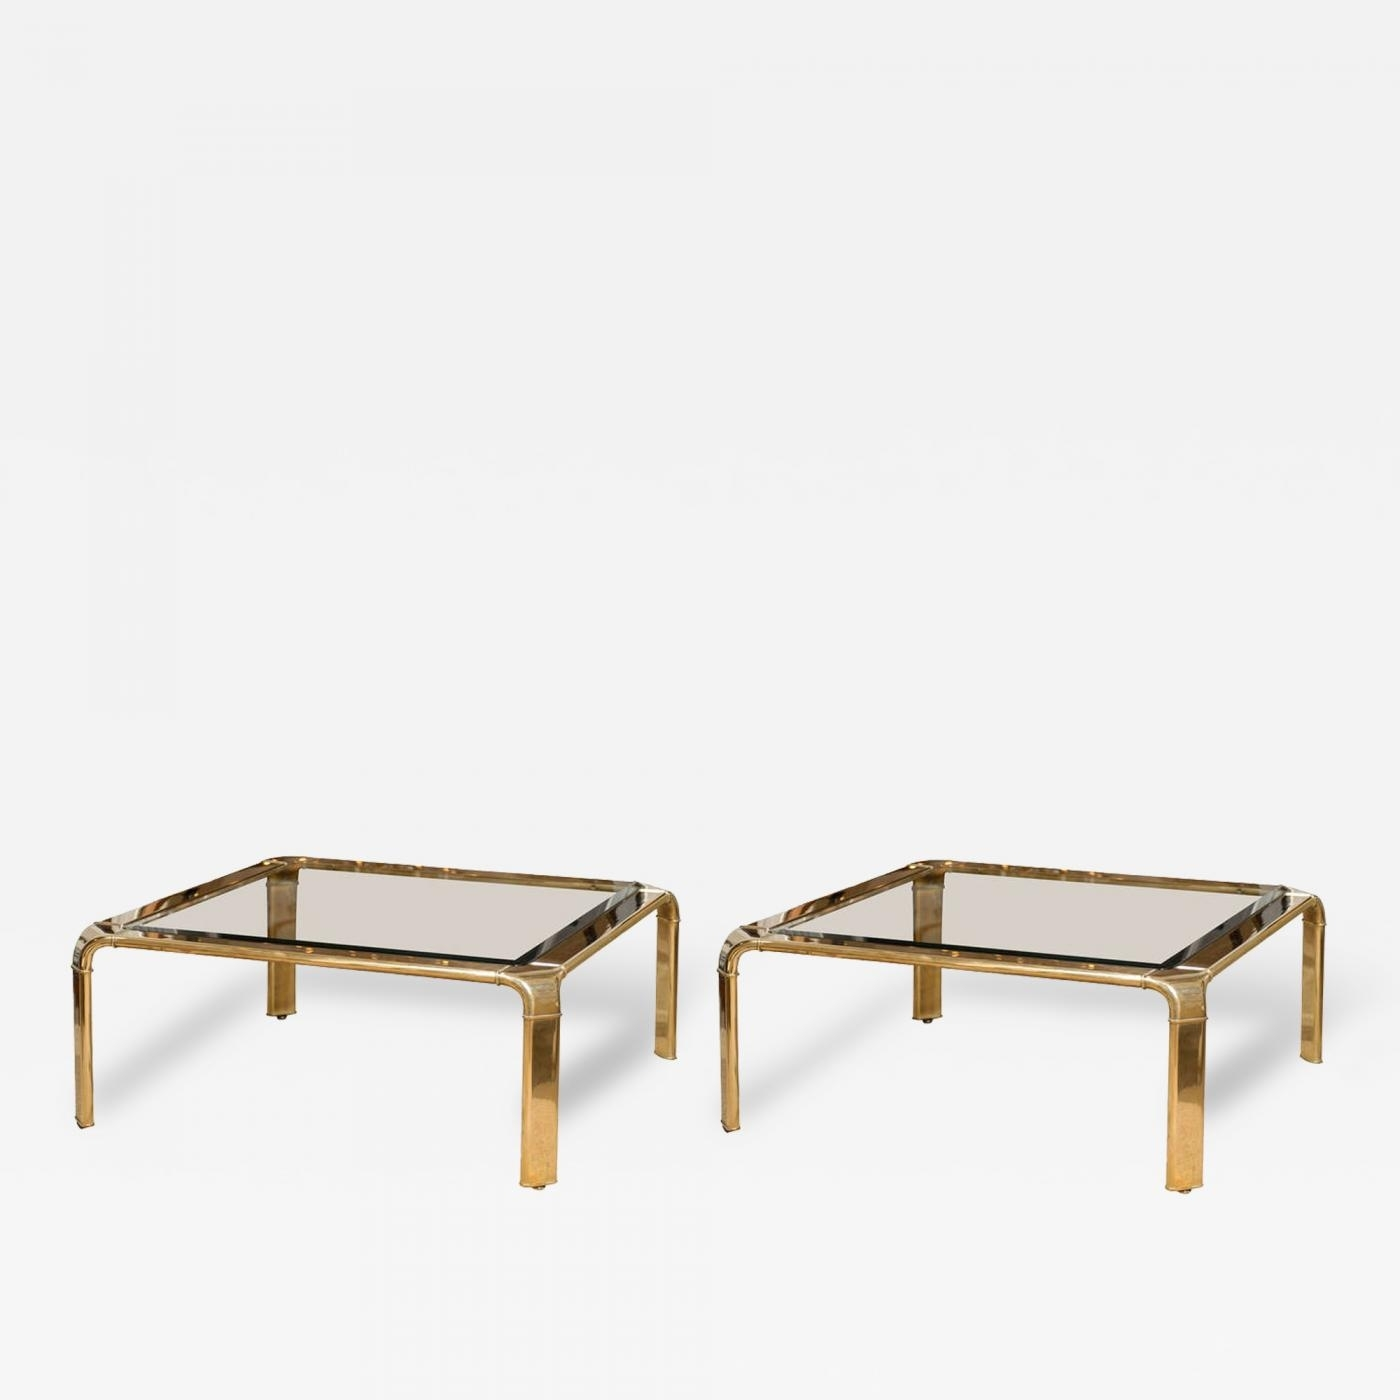 John Widdicomb - Stunning Widdicomb Brass Coffee Table With within Waterfall Coffee Tables (Image 15 of 30)